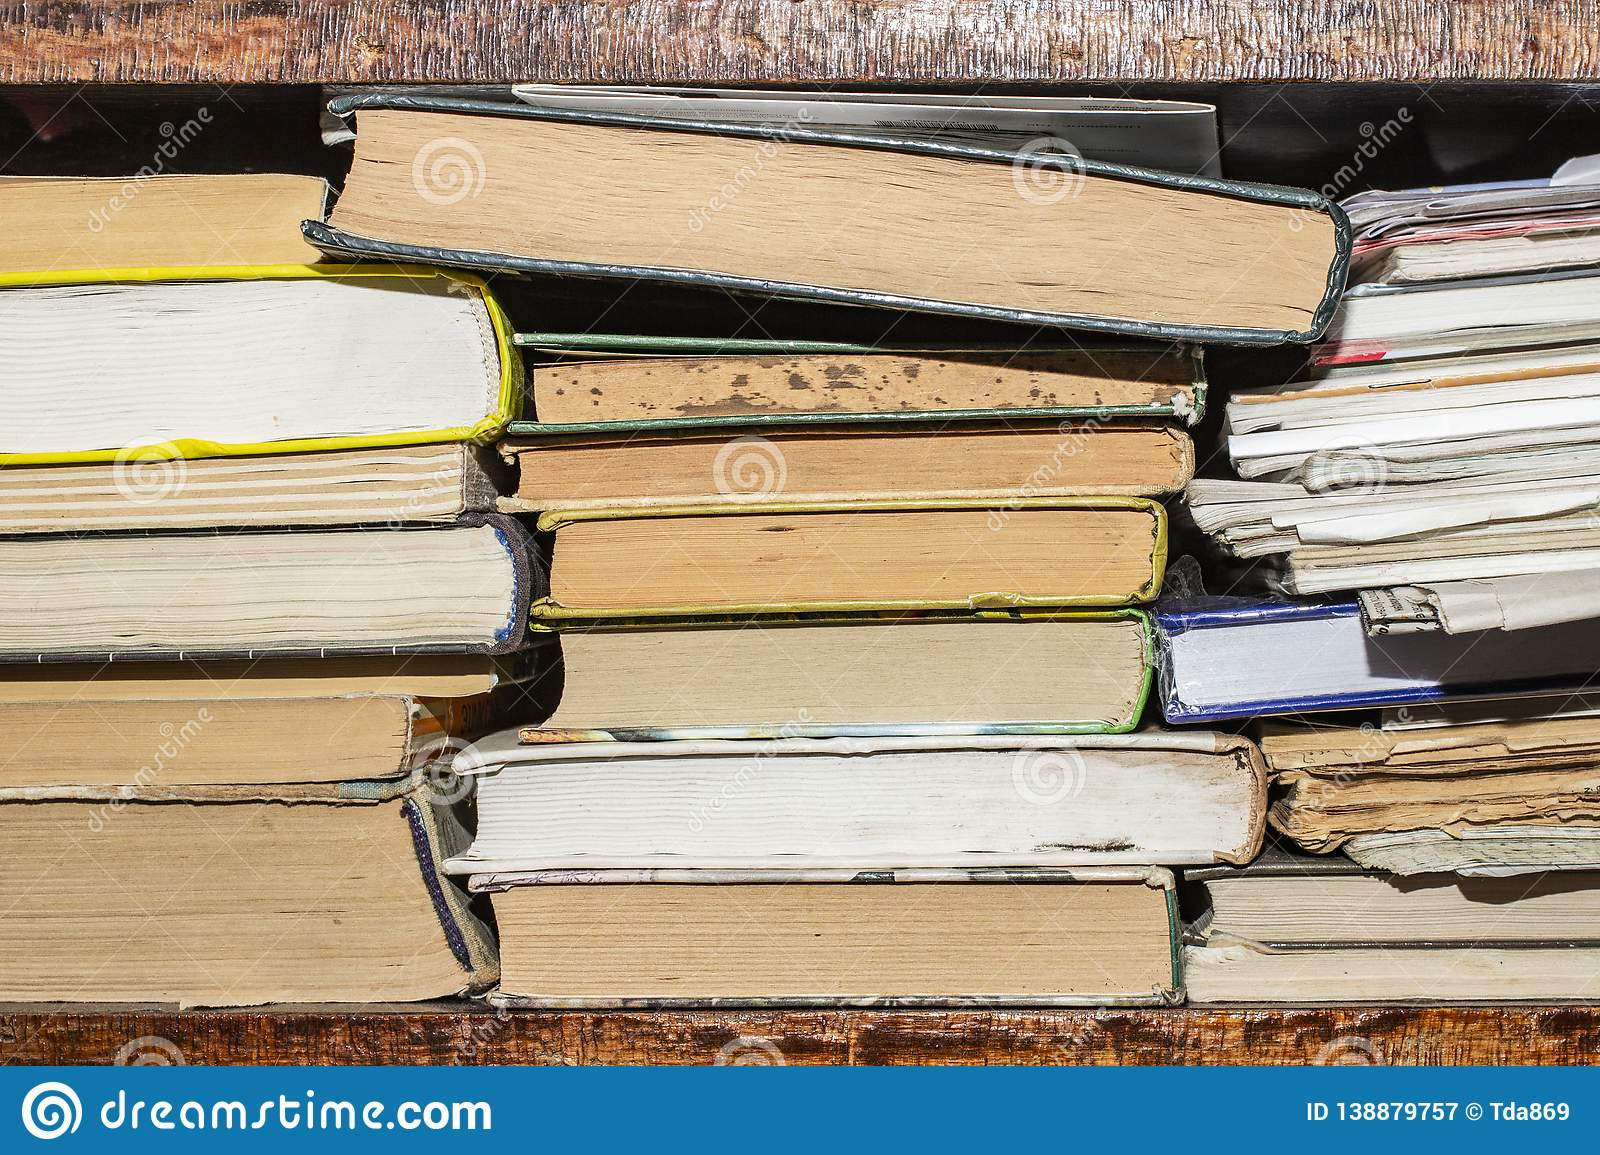 Old and used hardback books or text books seen from above. Books and reading are essential for self improvement, gaining knowledge